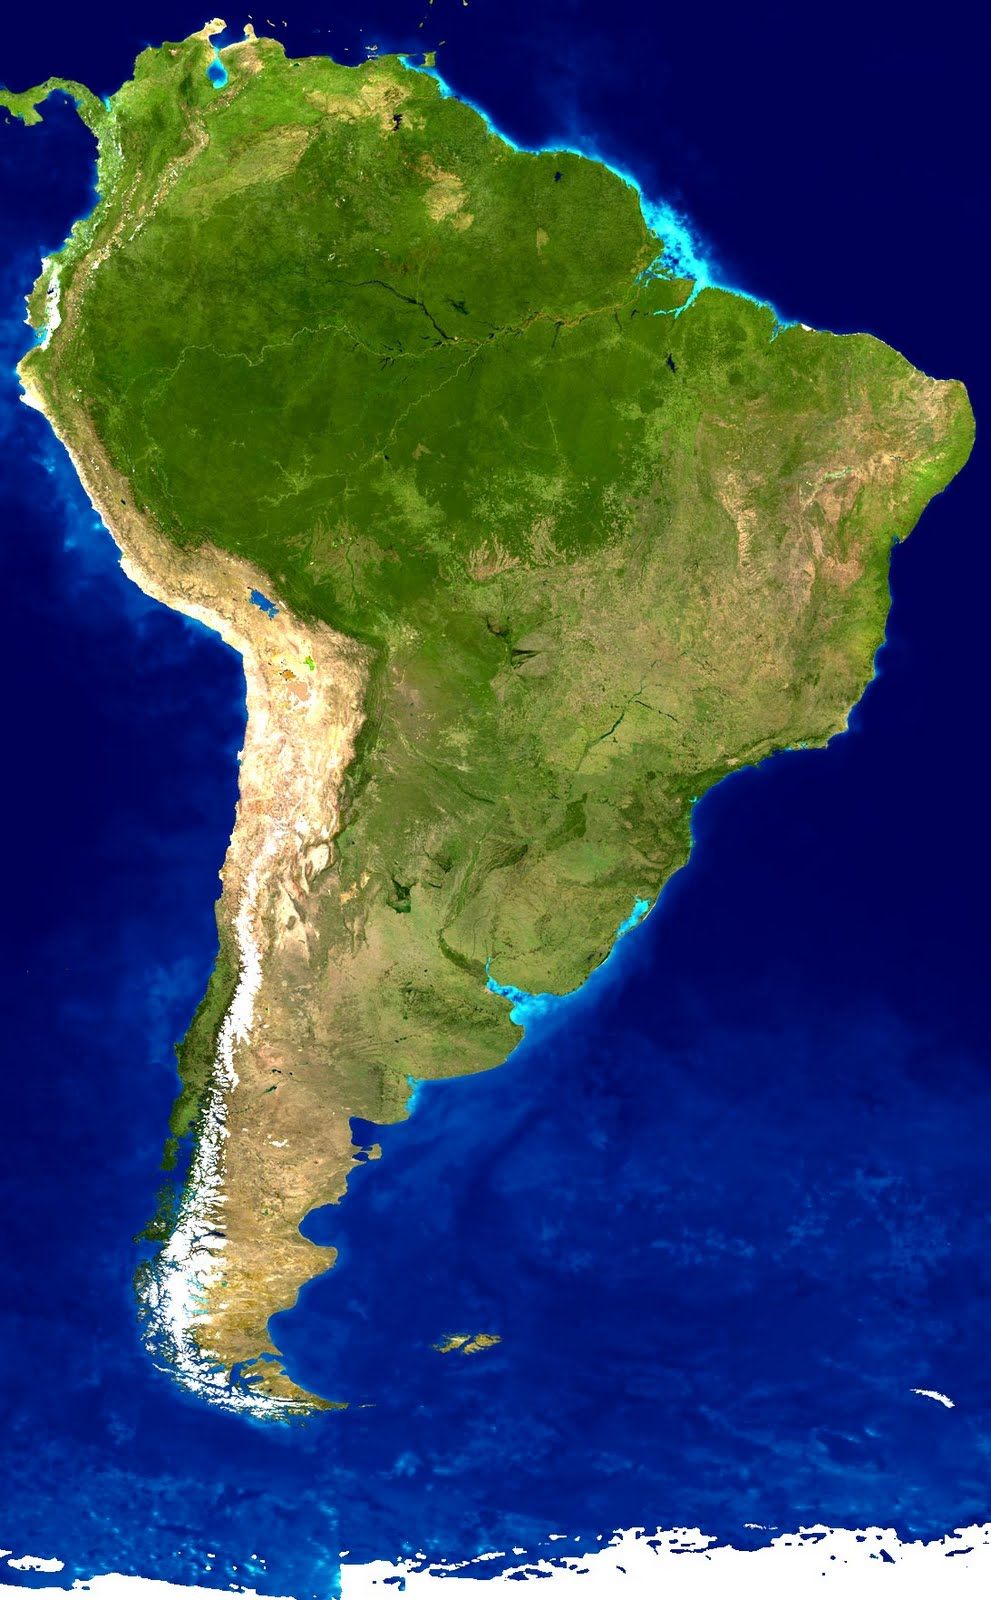 south-america-image Major Landforms Of South America on landforms of north america, major rivers in south america, outline of south america, bodies of water of south america, plateau of brazil south america, major biomes of south america, major cities in latin america, major religions of south america, states of south america, continent of south america, major landmarks of south america, major mountains of south america, vegetation of south america, landforms in america, major geographic features of south america, rivers of south america, major deserts of south america, major regions of south america, major deserts in south america, forests of south america,